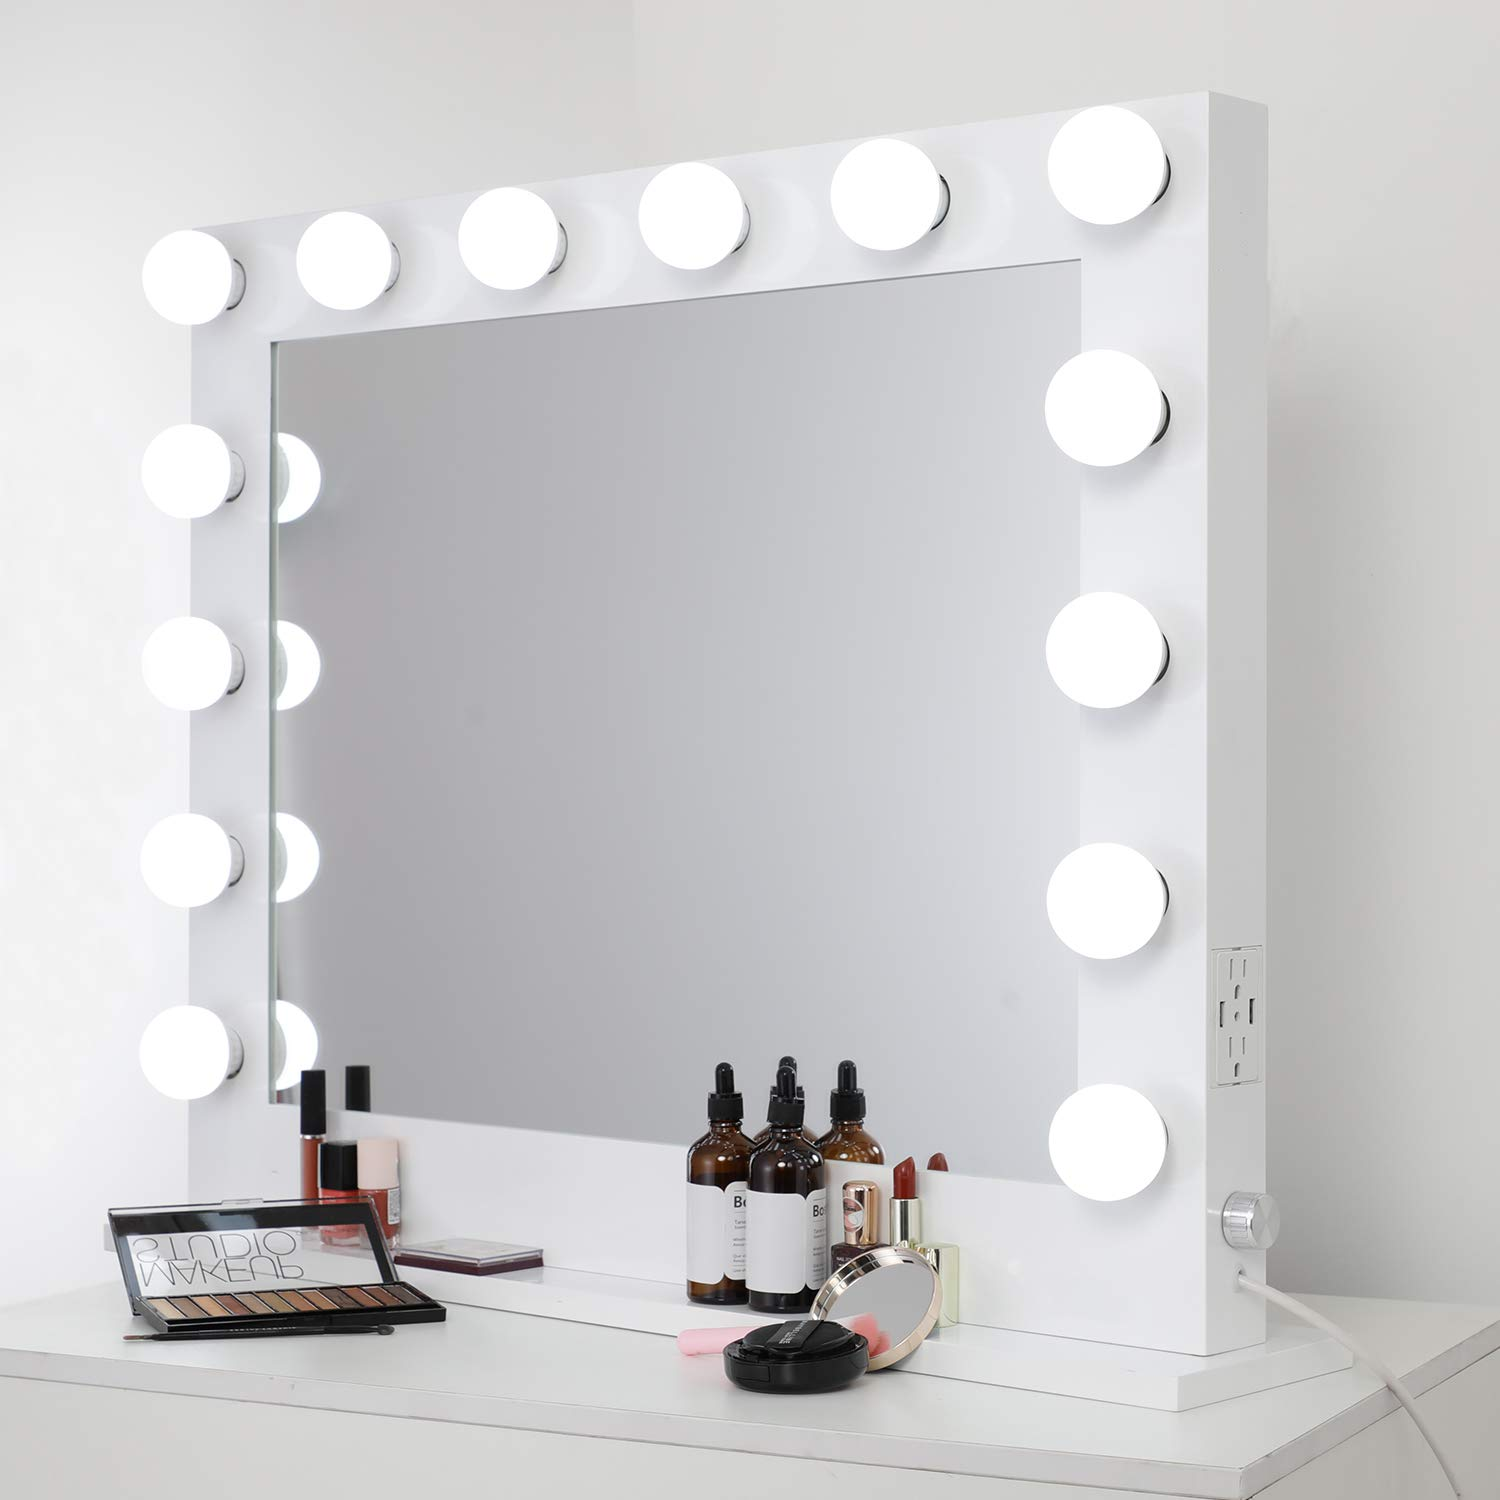 WAYKING Lighted Makeup Mirror, Hollywood Vanity Mirror with Lights, Tabletop or Wall Mounted Vanity Mirror with Dual USB Ports and Outlets, White(L33H26.3 inch) by WAYKING